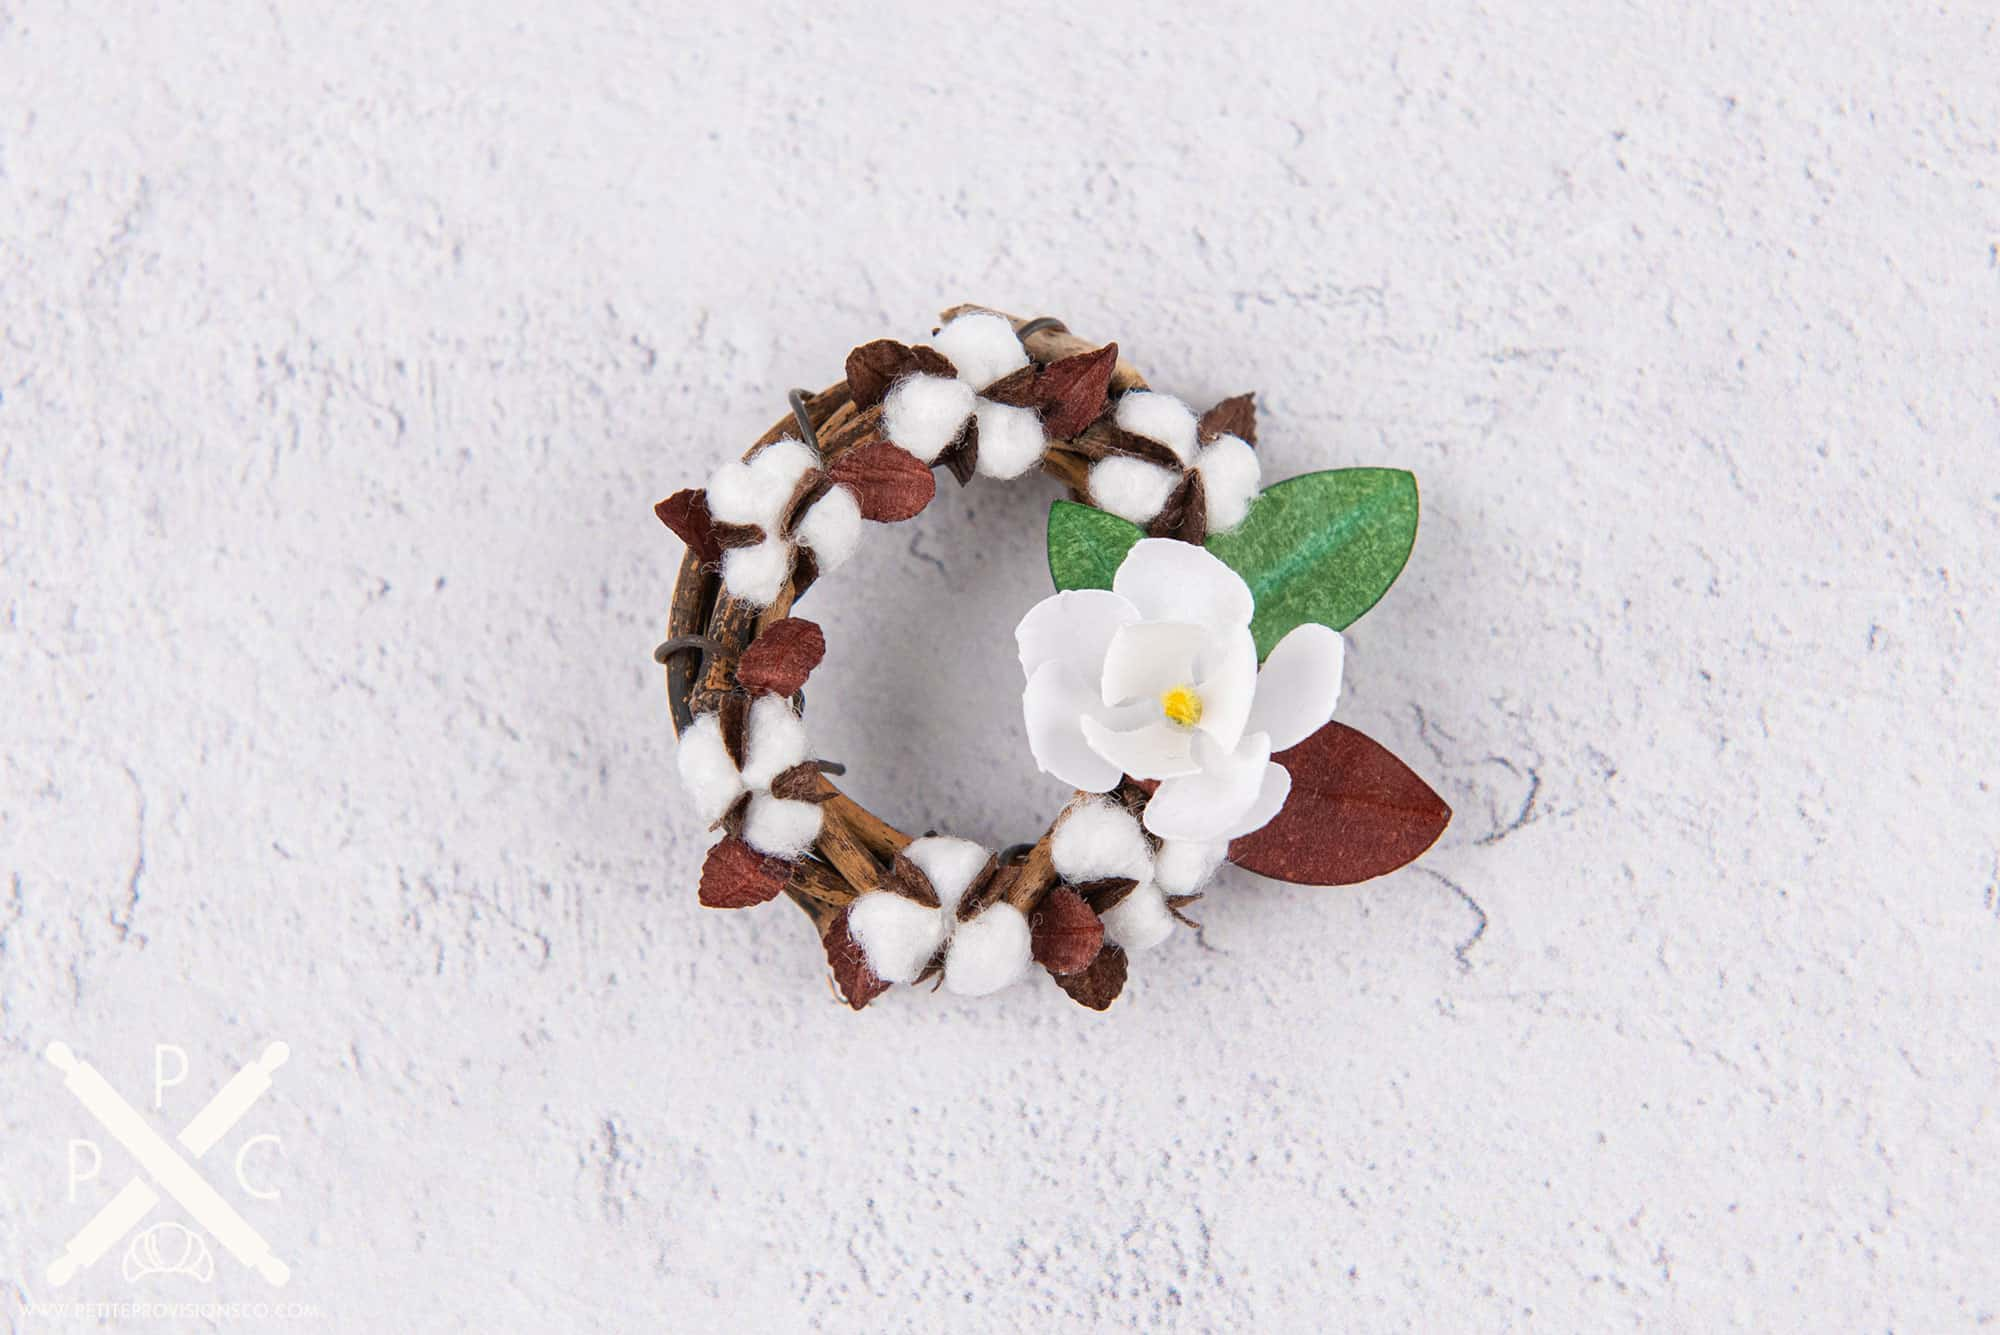 Make a miniature grapevine wreath with your natural cotton bolls